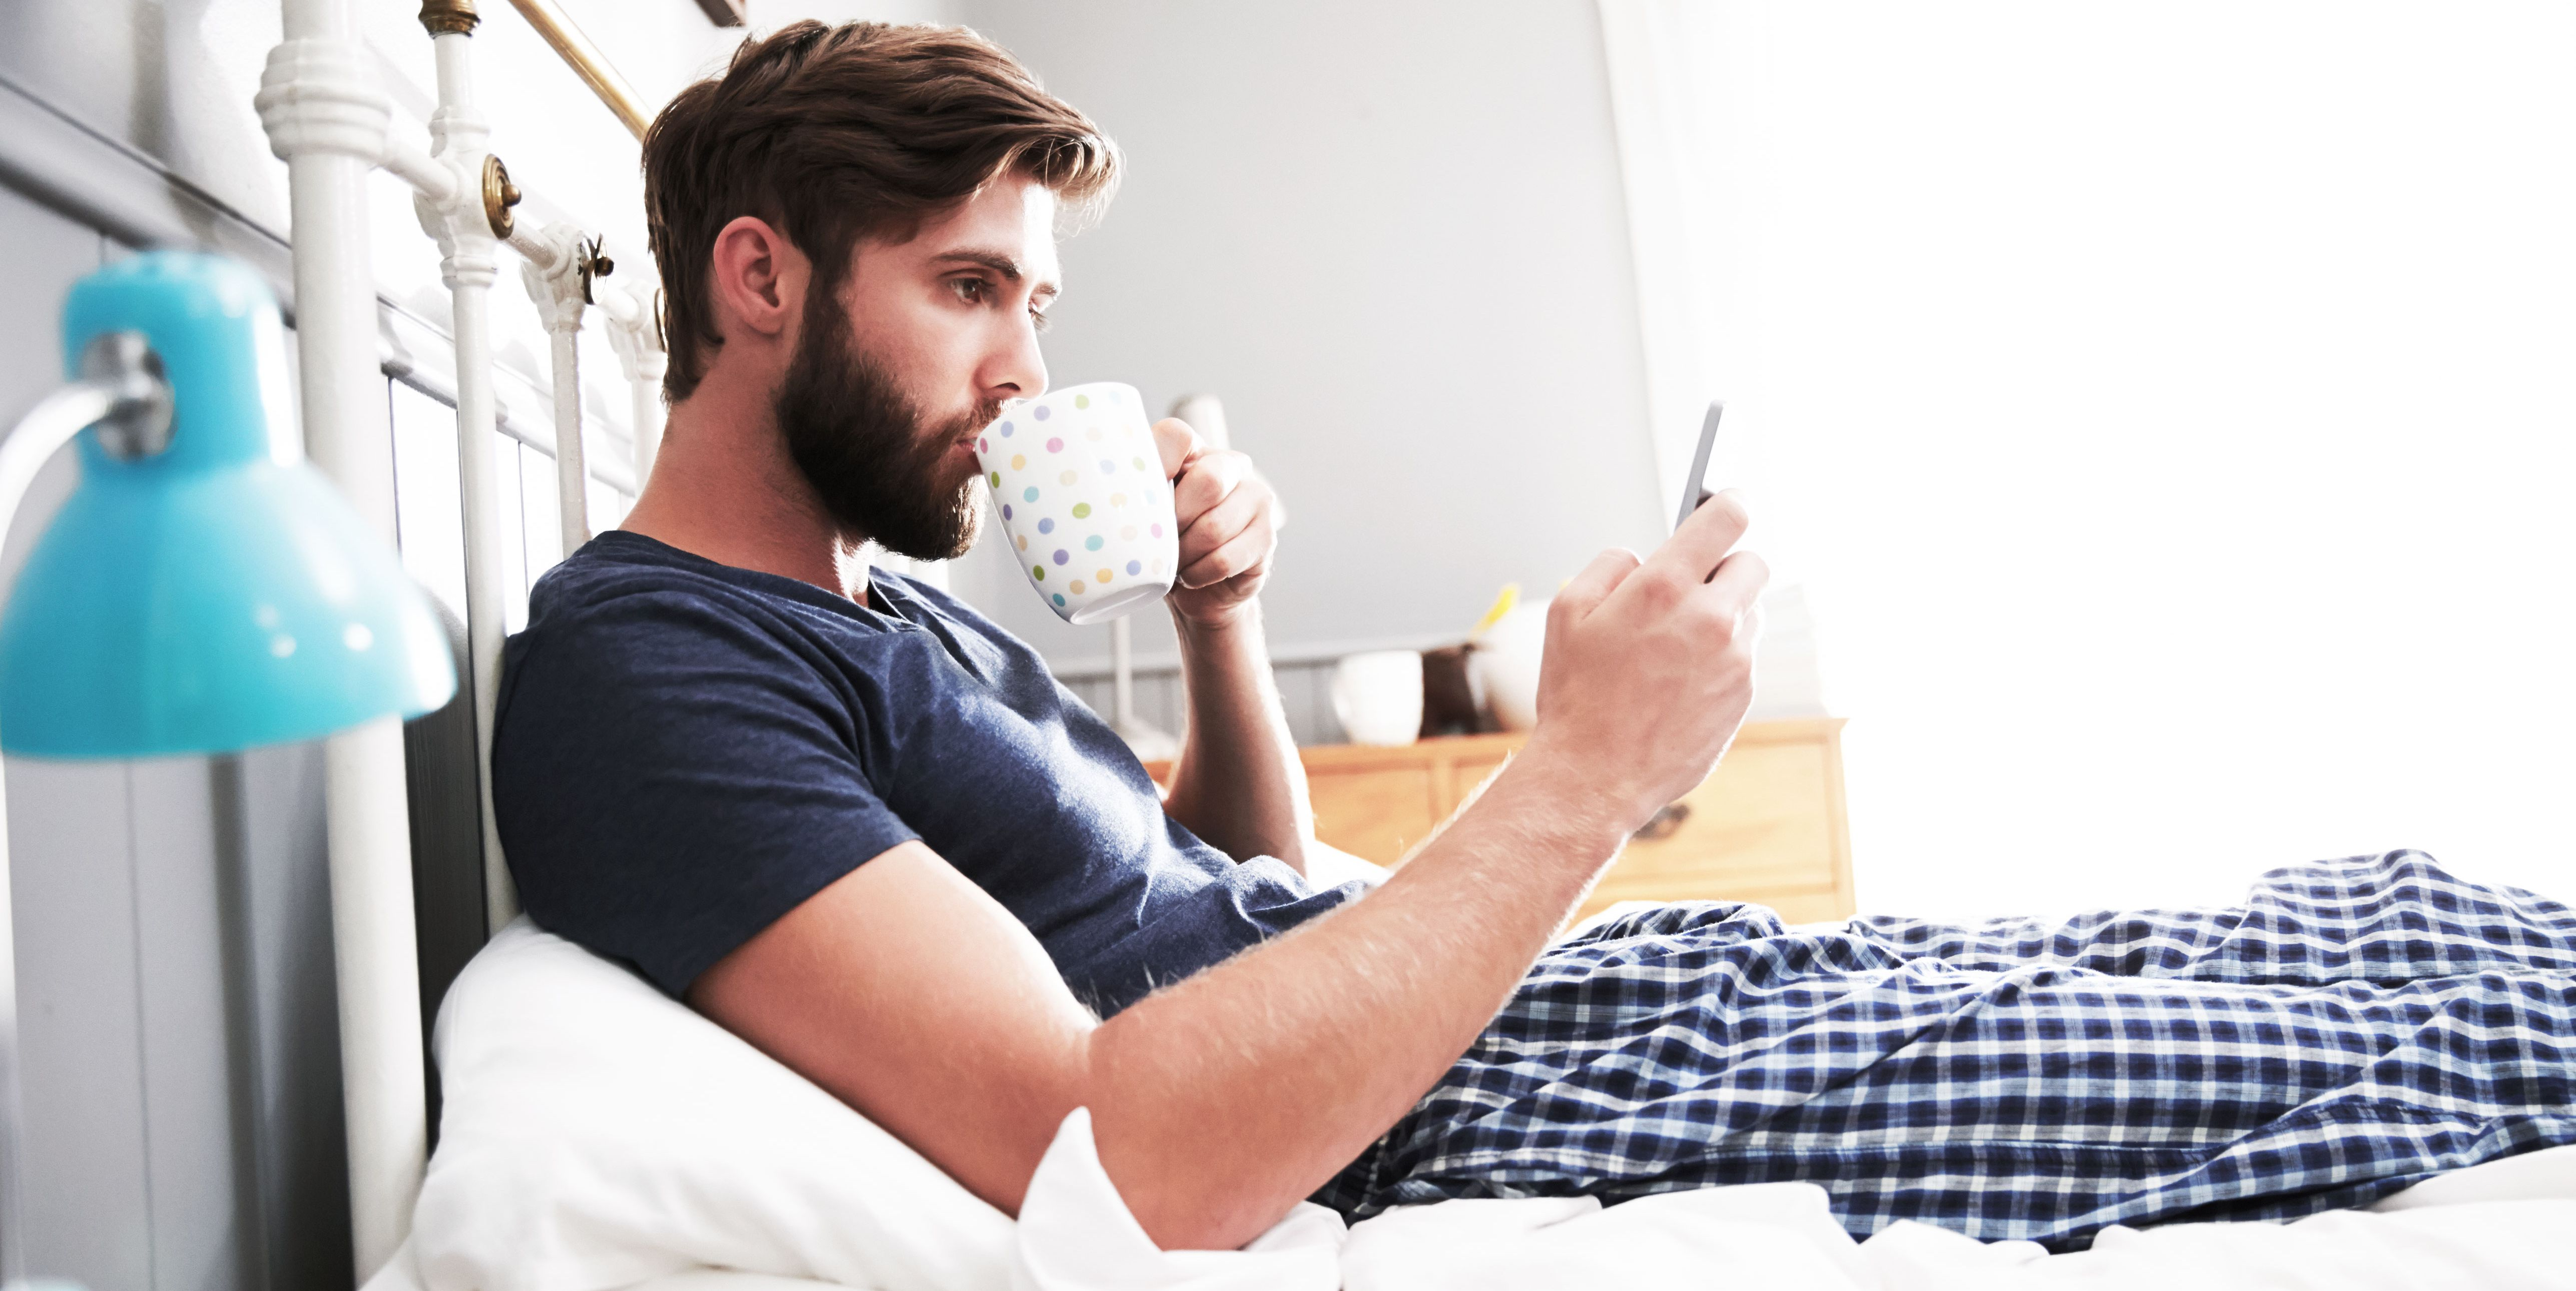 The 10 Best Men's Pajamas for Lazy Day Lounging